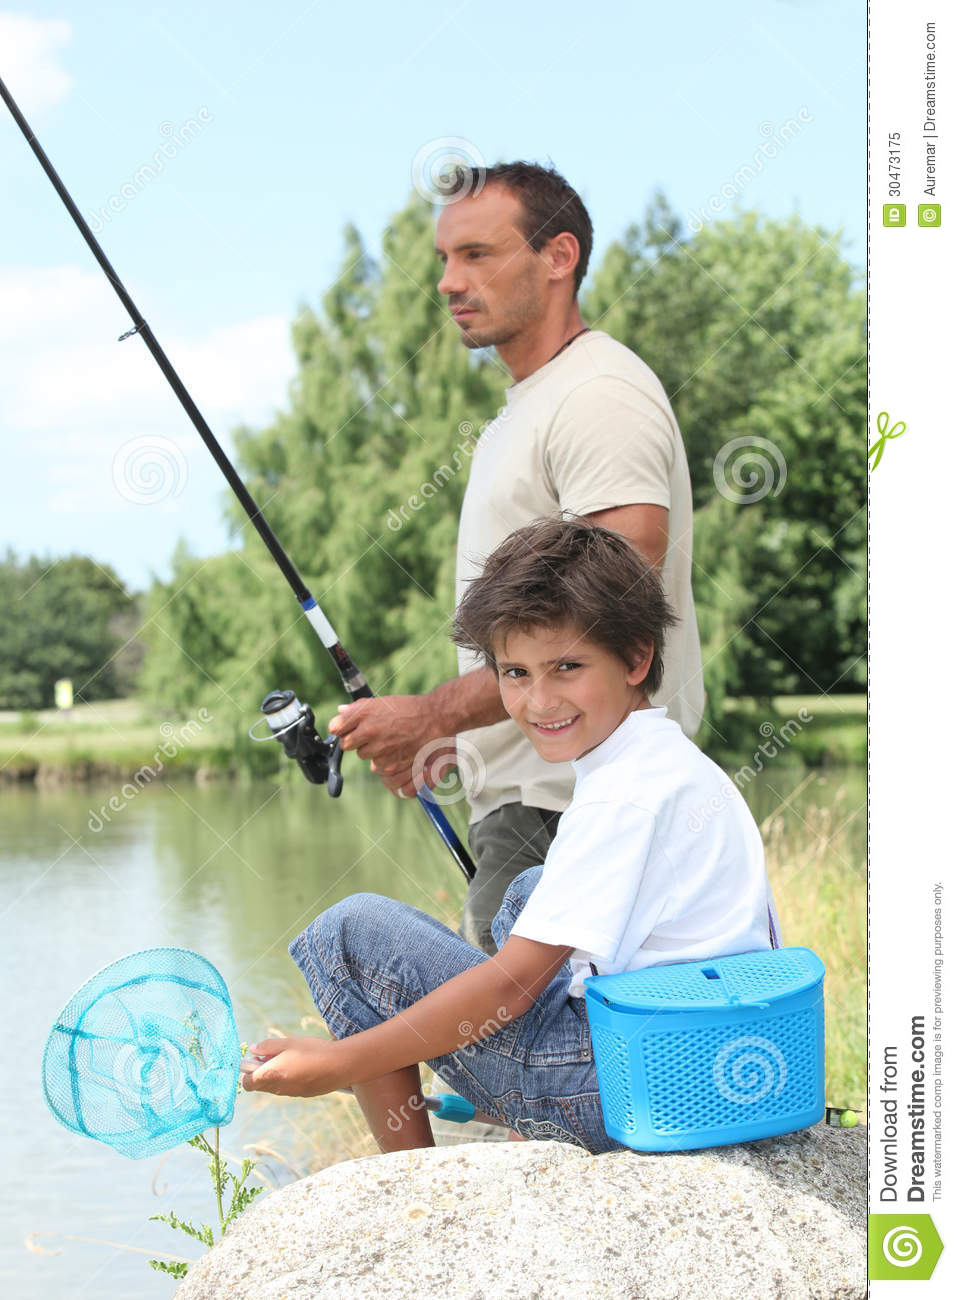 Father and son fishing royalty free stock photo image for Father son fishing